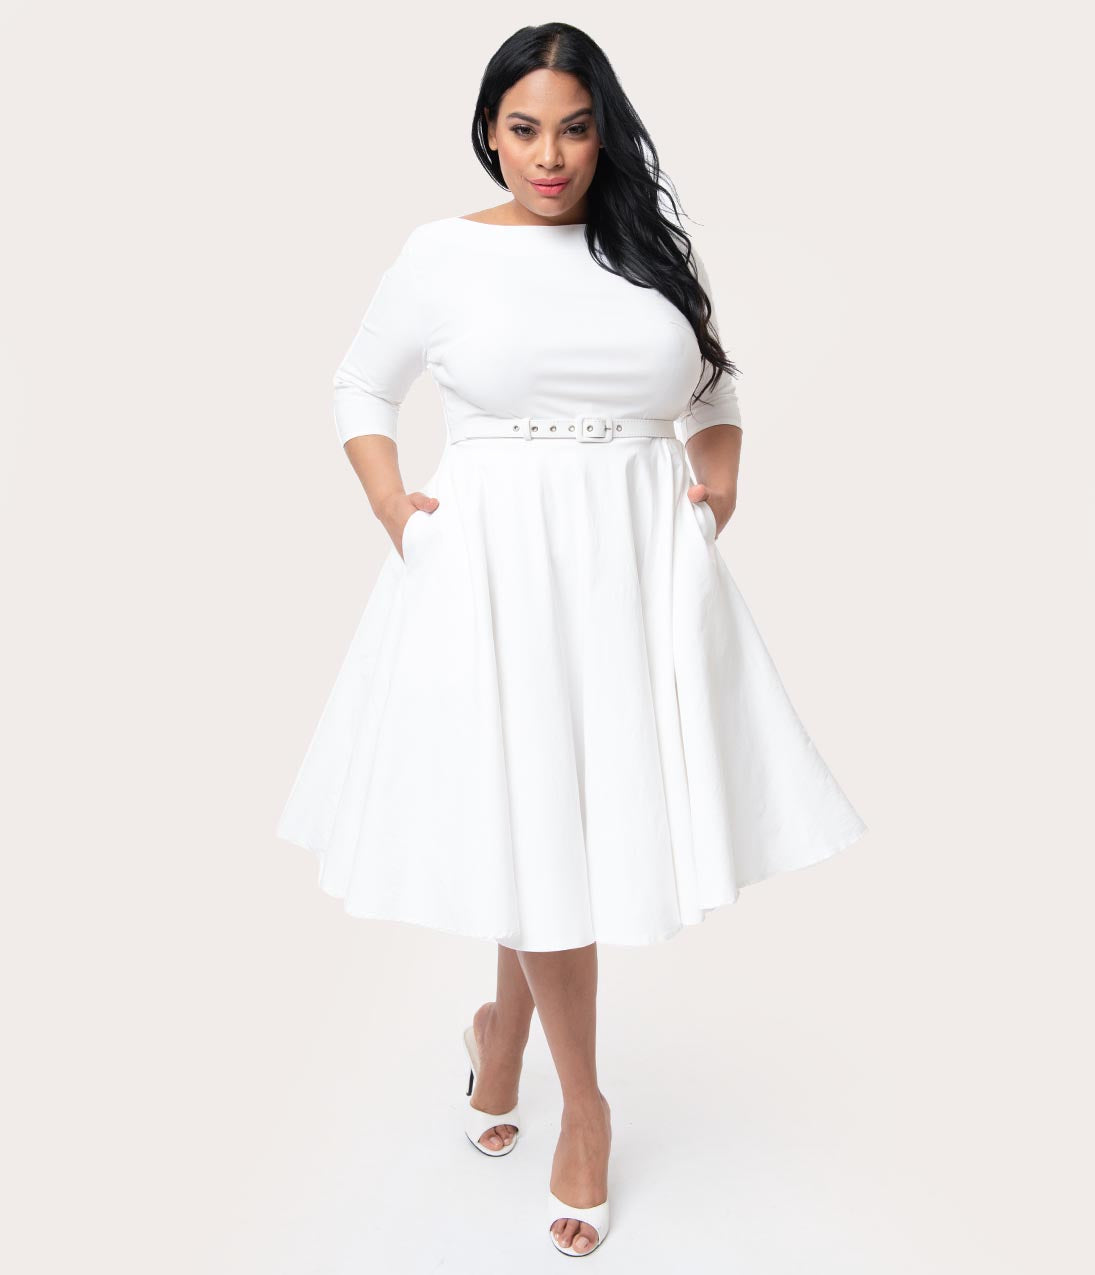 1950s Plus Size Dresses, Swing Dresses Unique Vintage Plus Size 1950S Style Ivory Stretch Sleeved Devon Swing Dress $88.00 AT vintagedancer.com